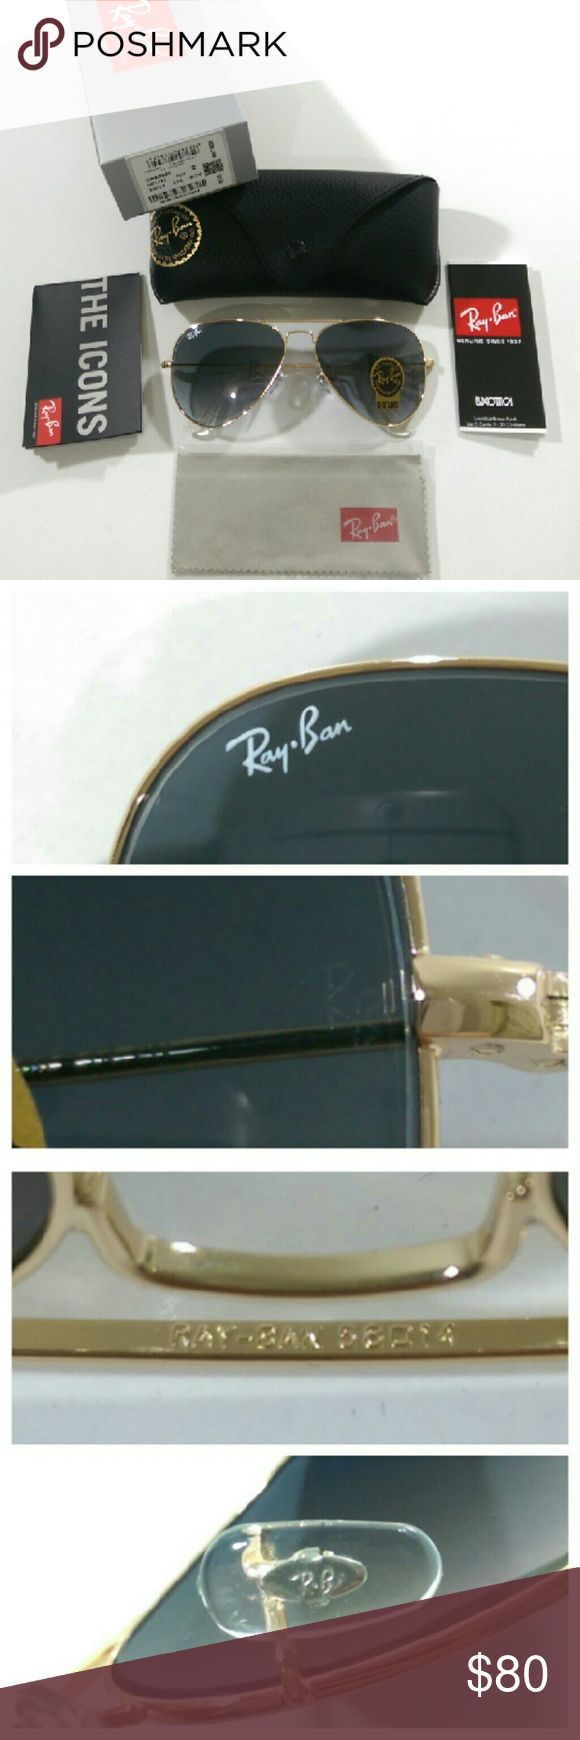 Authentic blue gradient Ray Ban aviator AUTHENTIC  100% Firm on price  Brand new in box Made in Italy  Serial number 001/32 (barcode shown) Size 58mm  Lens color --- blue gradient (real glass lens for better vision) Gold frame  Comes with box, case, cleaning cloth and booklet Fast shipping (will ship same day if purchased before  1pm) with 2-3 days priority mail  Trusted seller!!! Ray-Ban Accessories Glasses